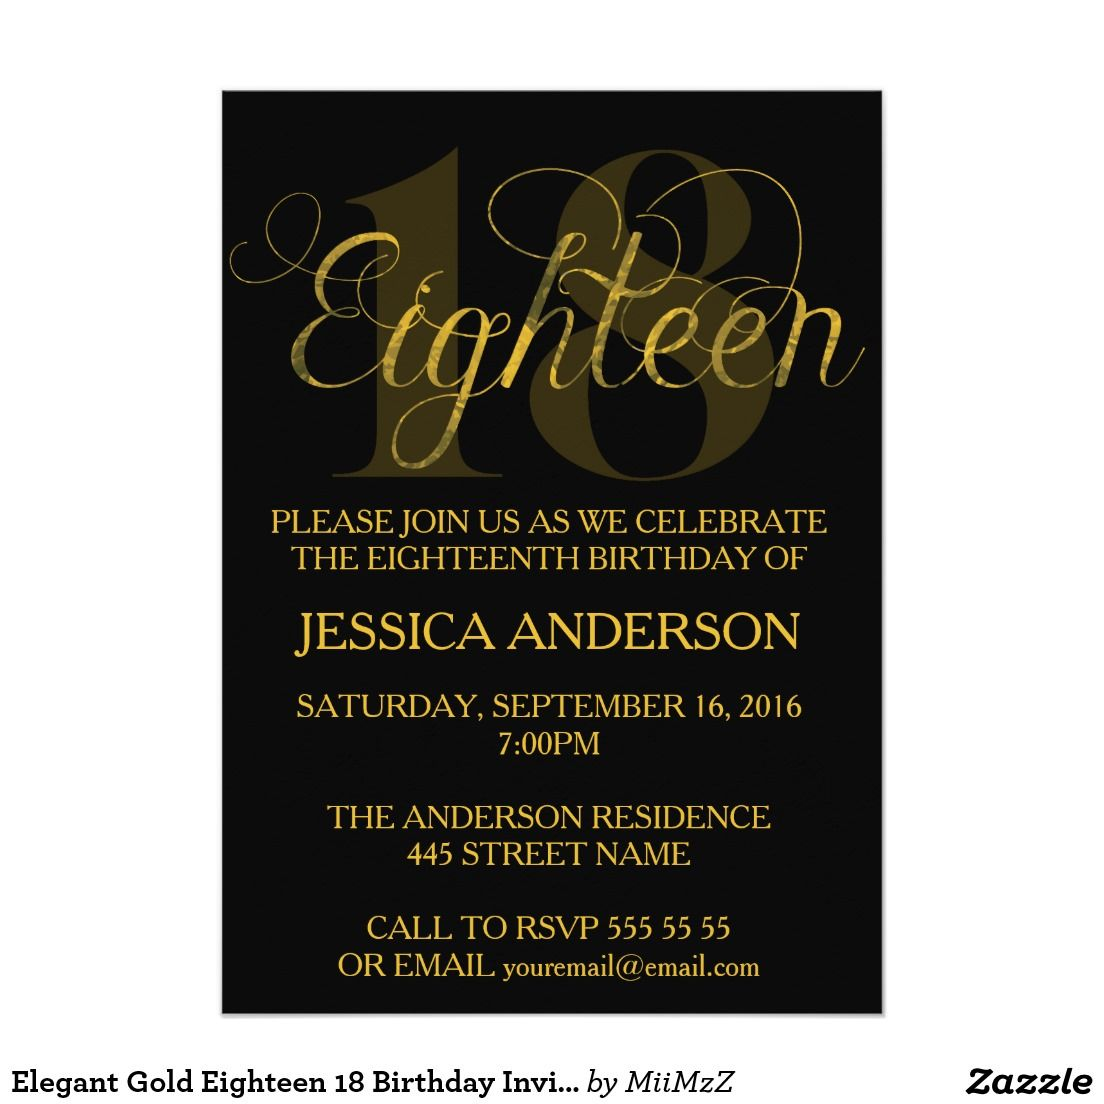 Get free 18th birthday invitations wording free printable get free 18th birthday invitations wording filmwisefo Image collections